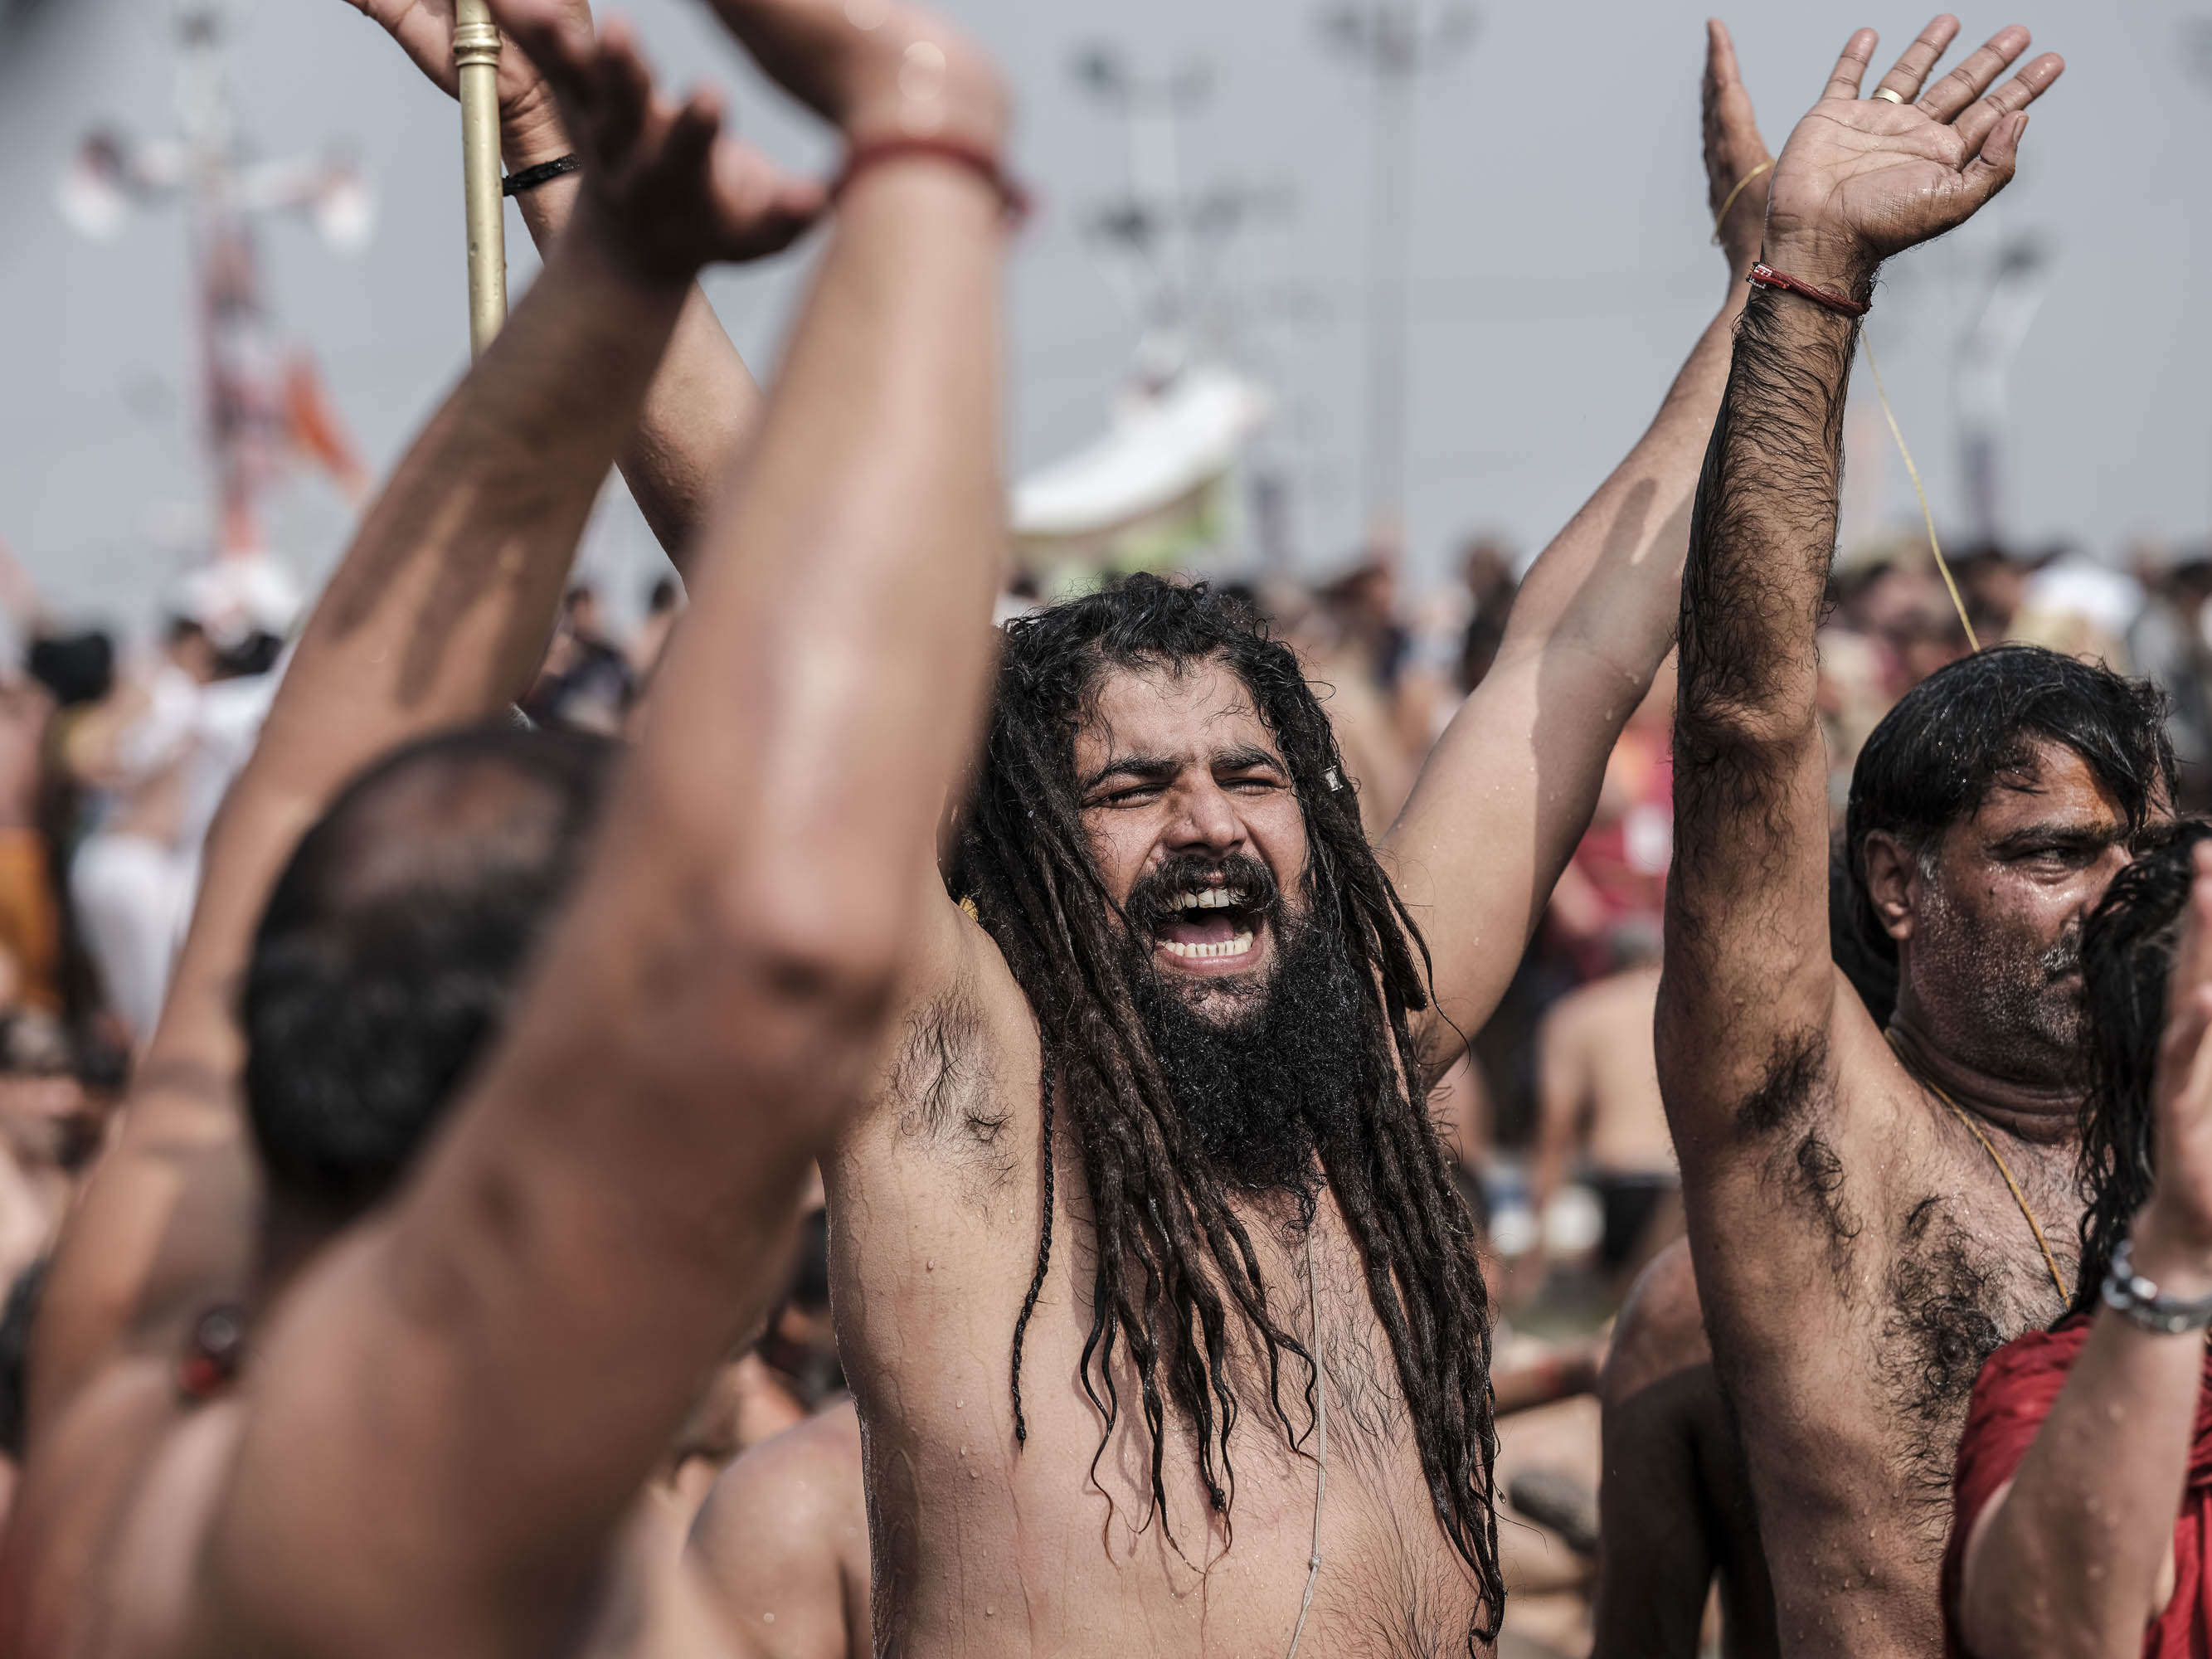 happy man baba 4 february pilgrims Kumbh mela 2019 India Allahabad Prayagraj Ardh hindu religious Festival event rivers photographer jose jeuland photography